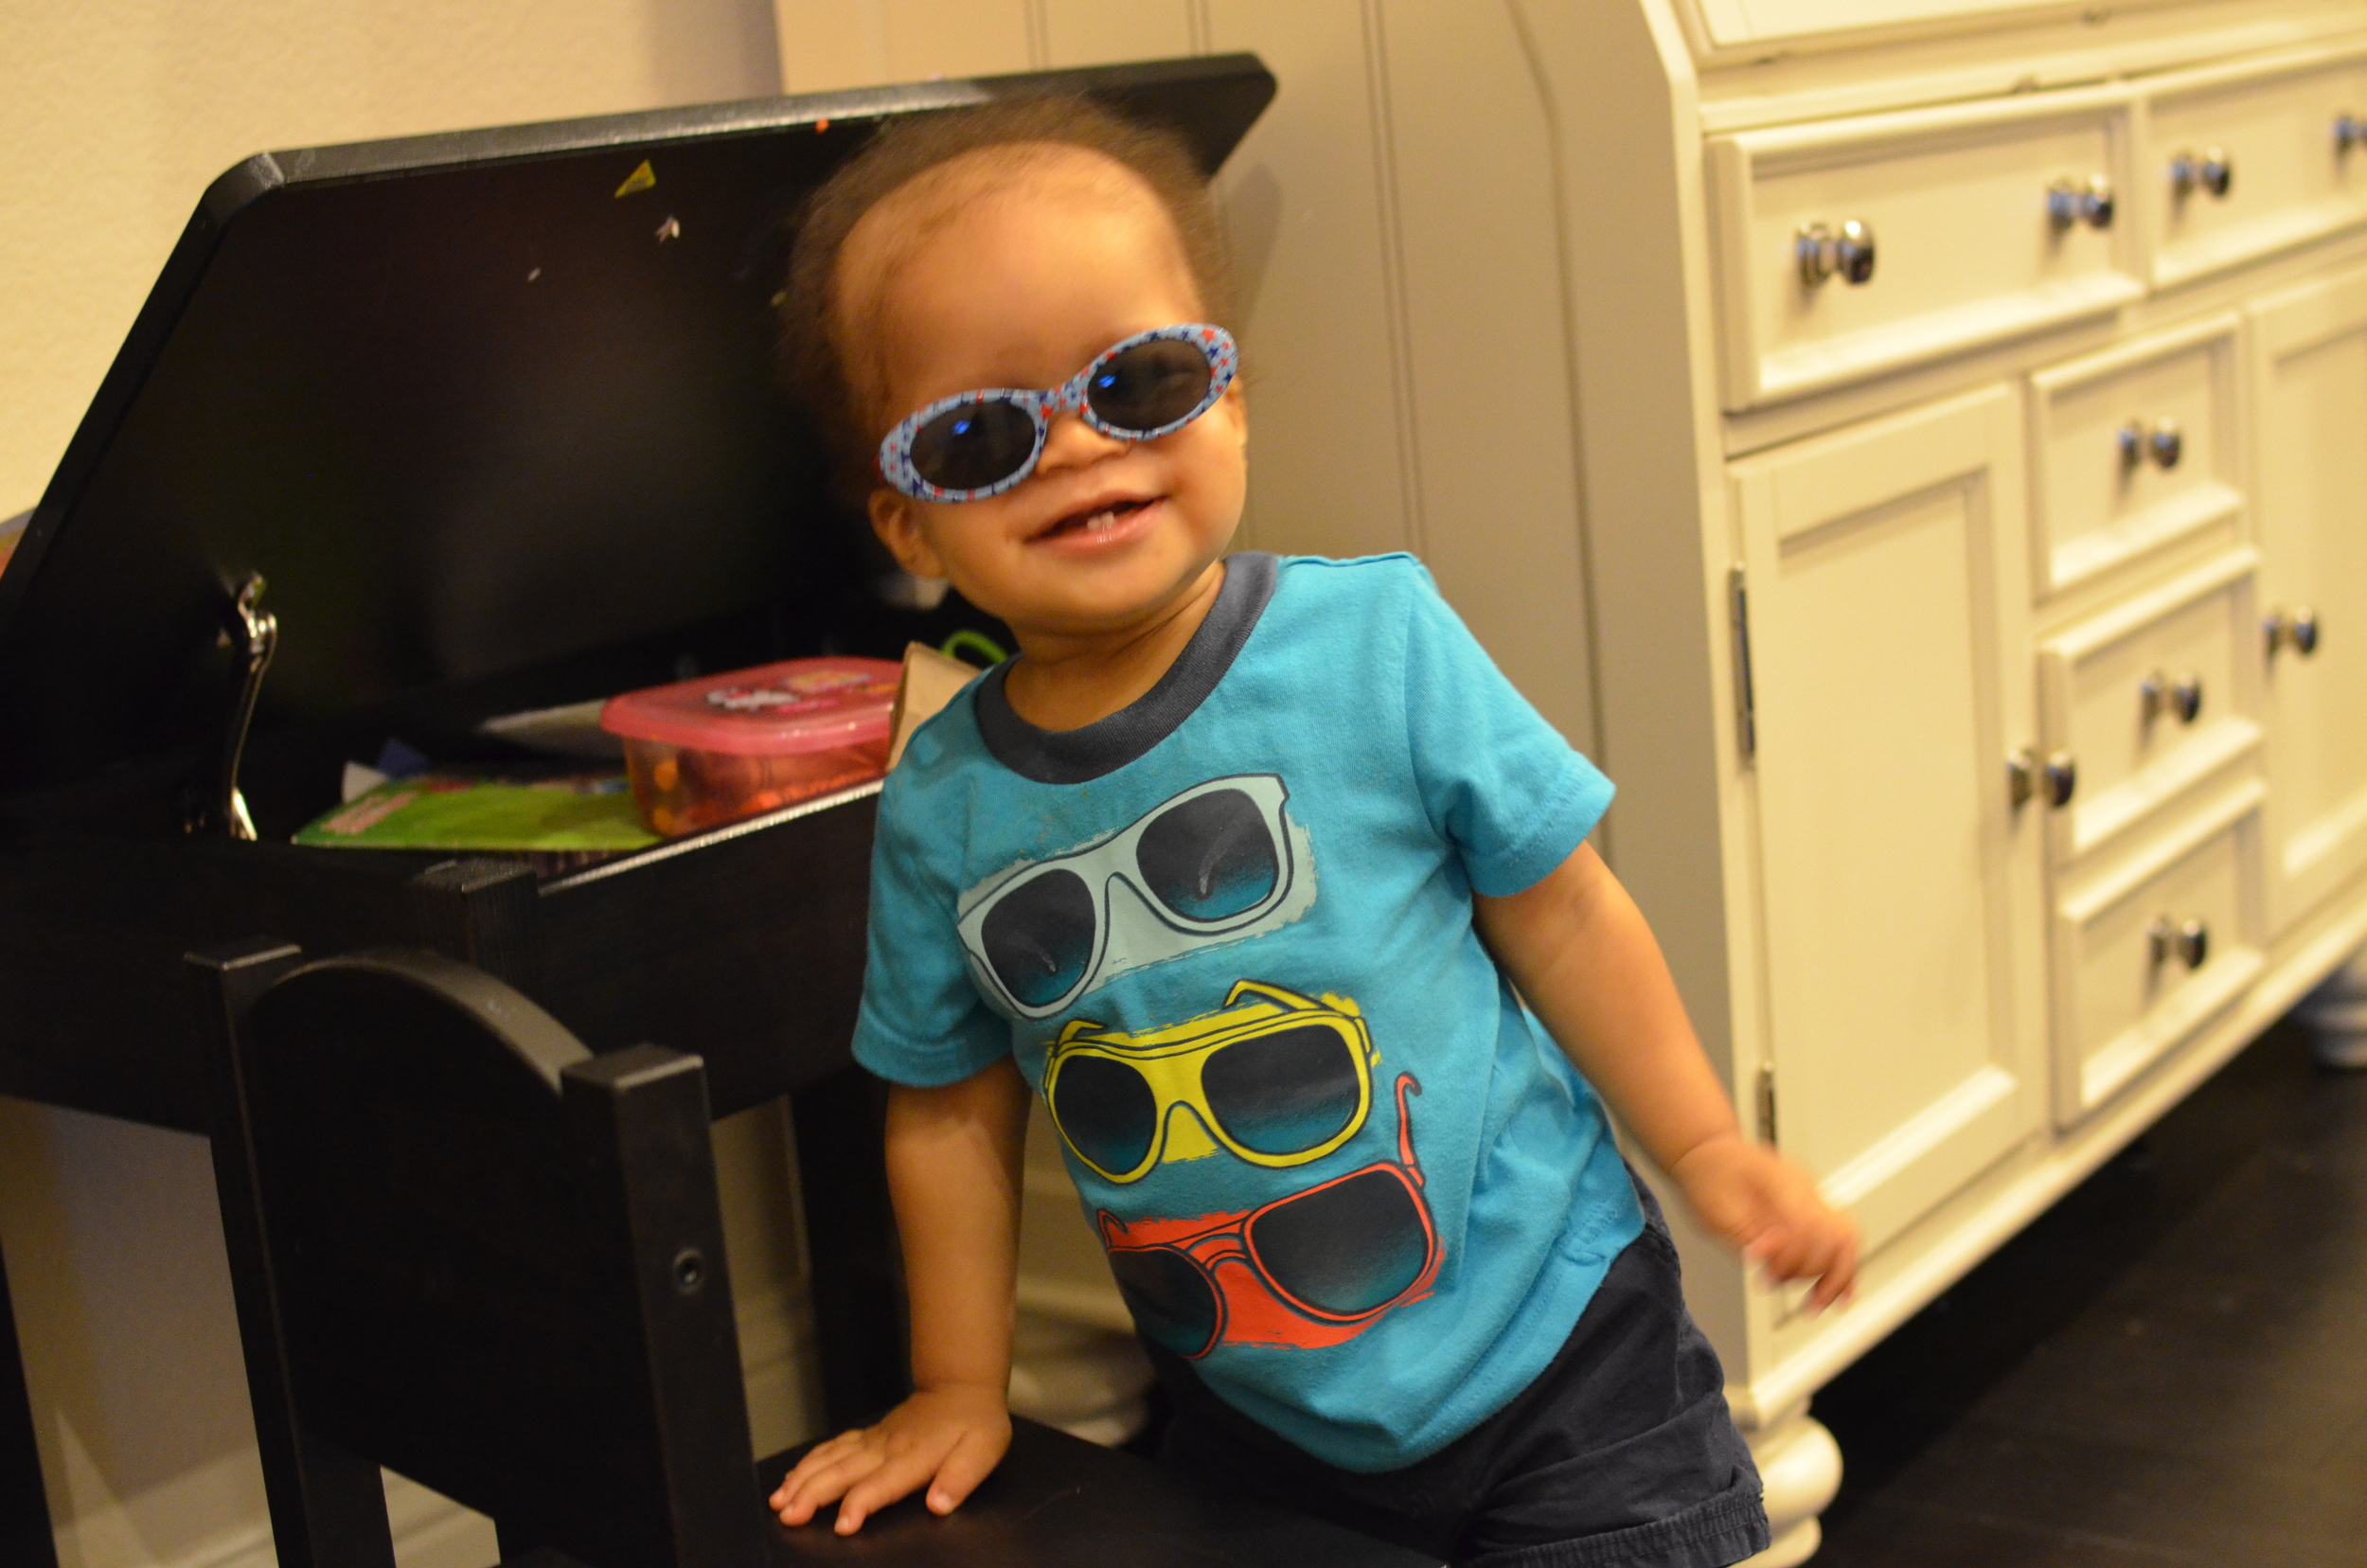 Day 69: One cool baby